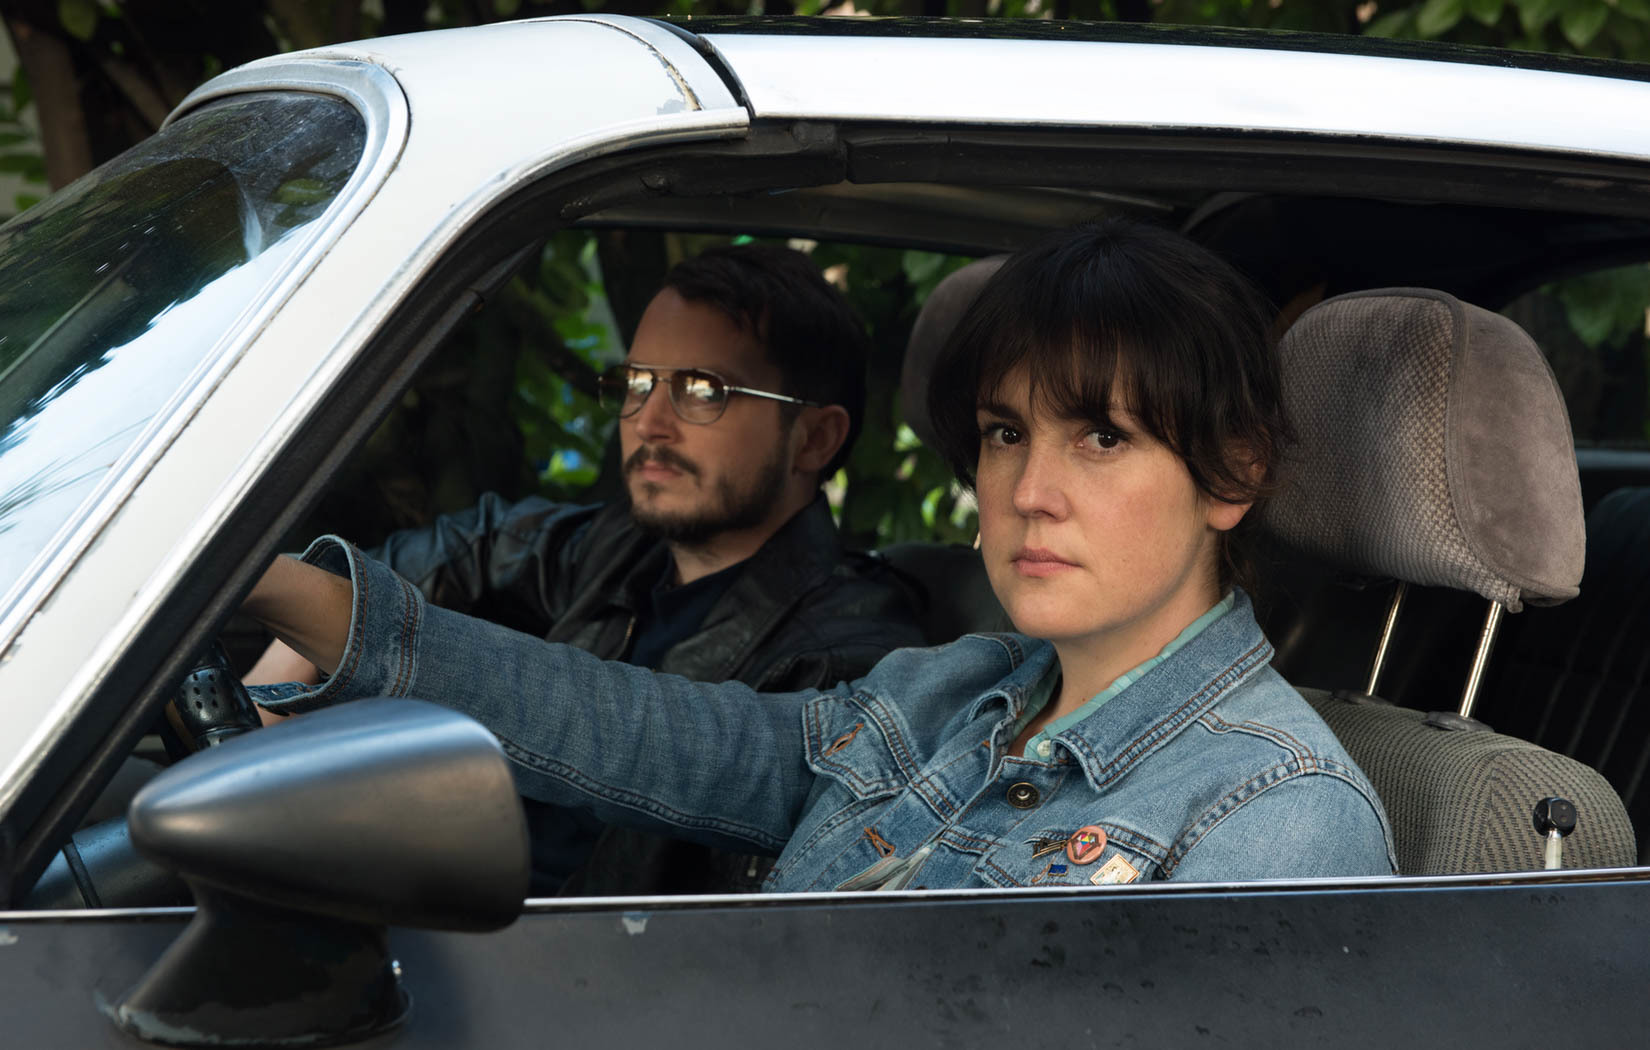 Elijah Wood and Melanie Lynskey in I Don't Feel at Home in This World Anymore. (2017)